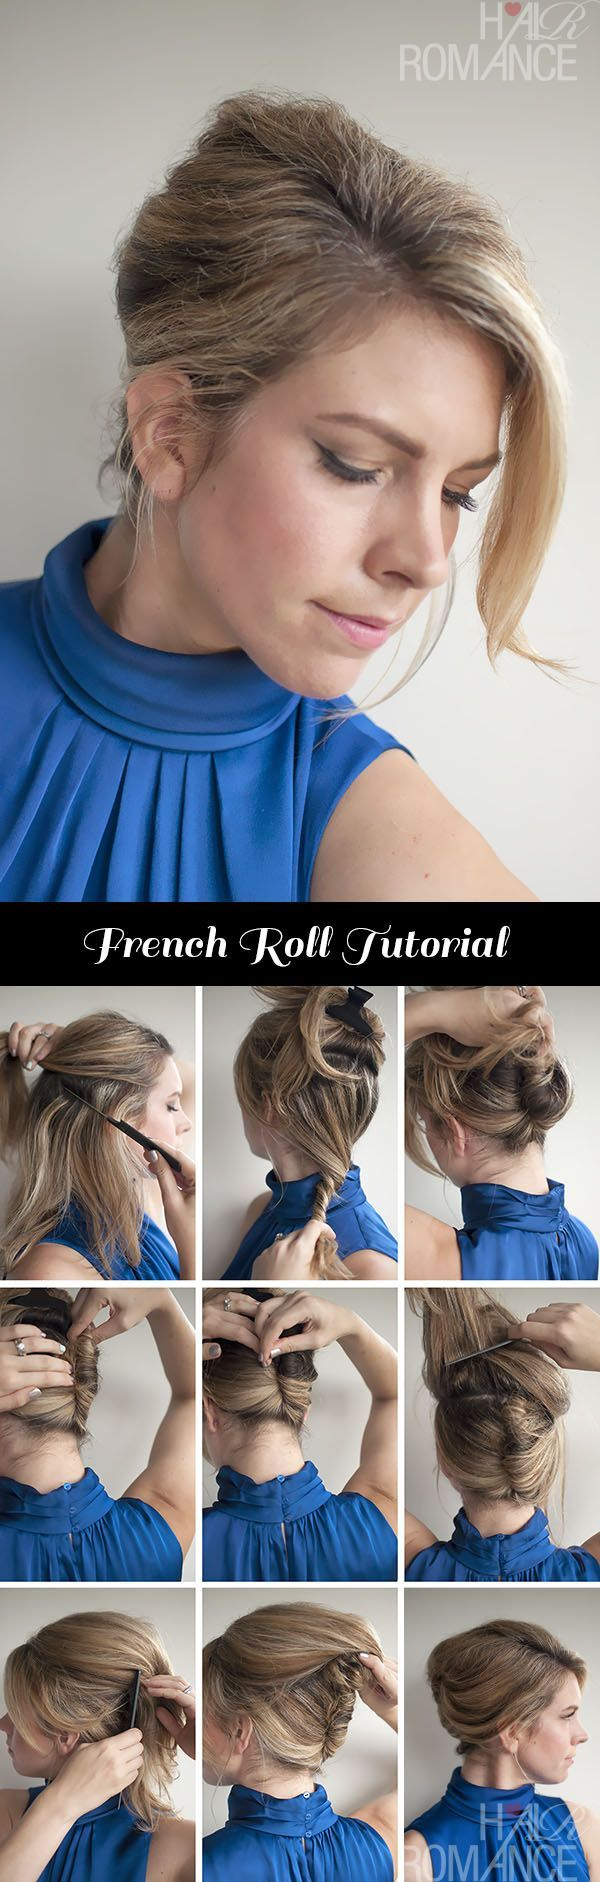 Vintage style – Classic French Roll Hairstyle Tutorial | Your guide on doing the classic french roll. #youresopretty